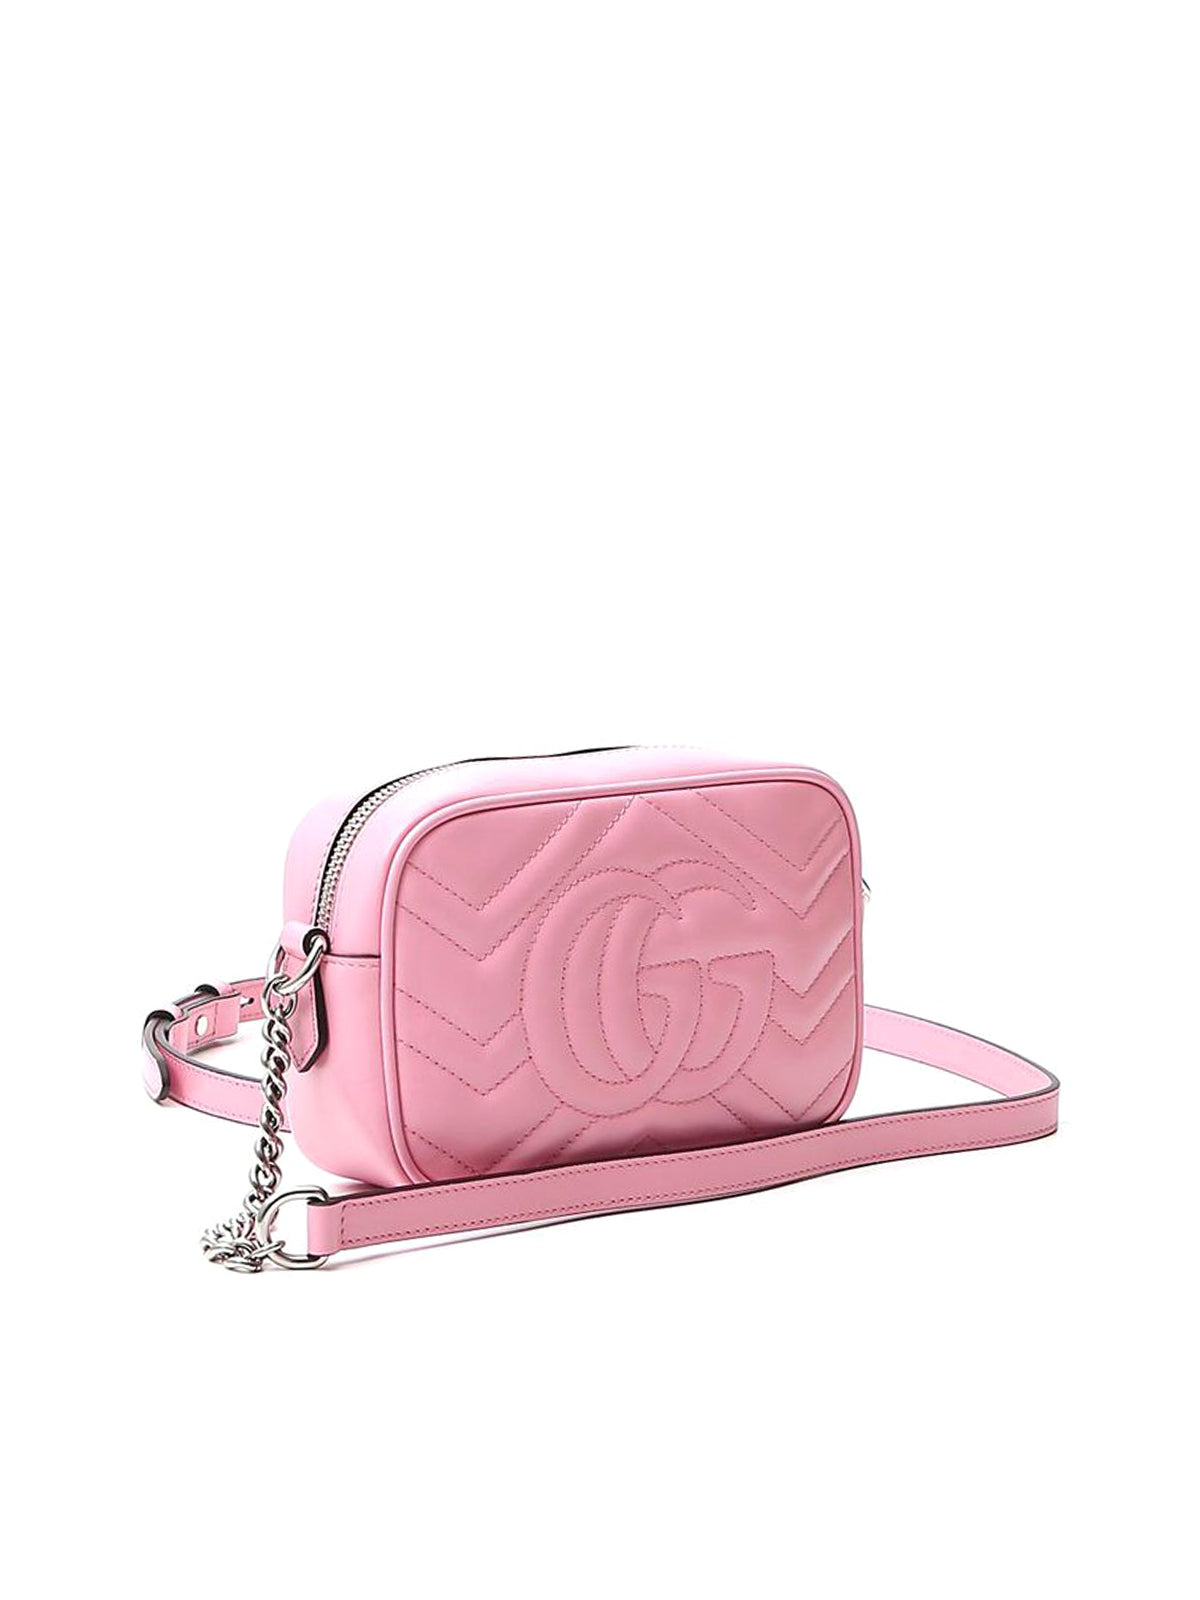 Pastel GG Marmont mini bag